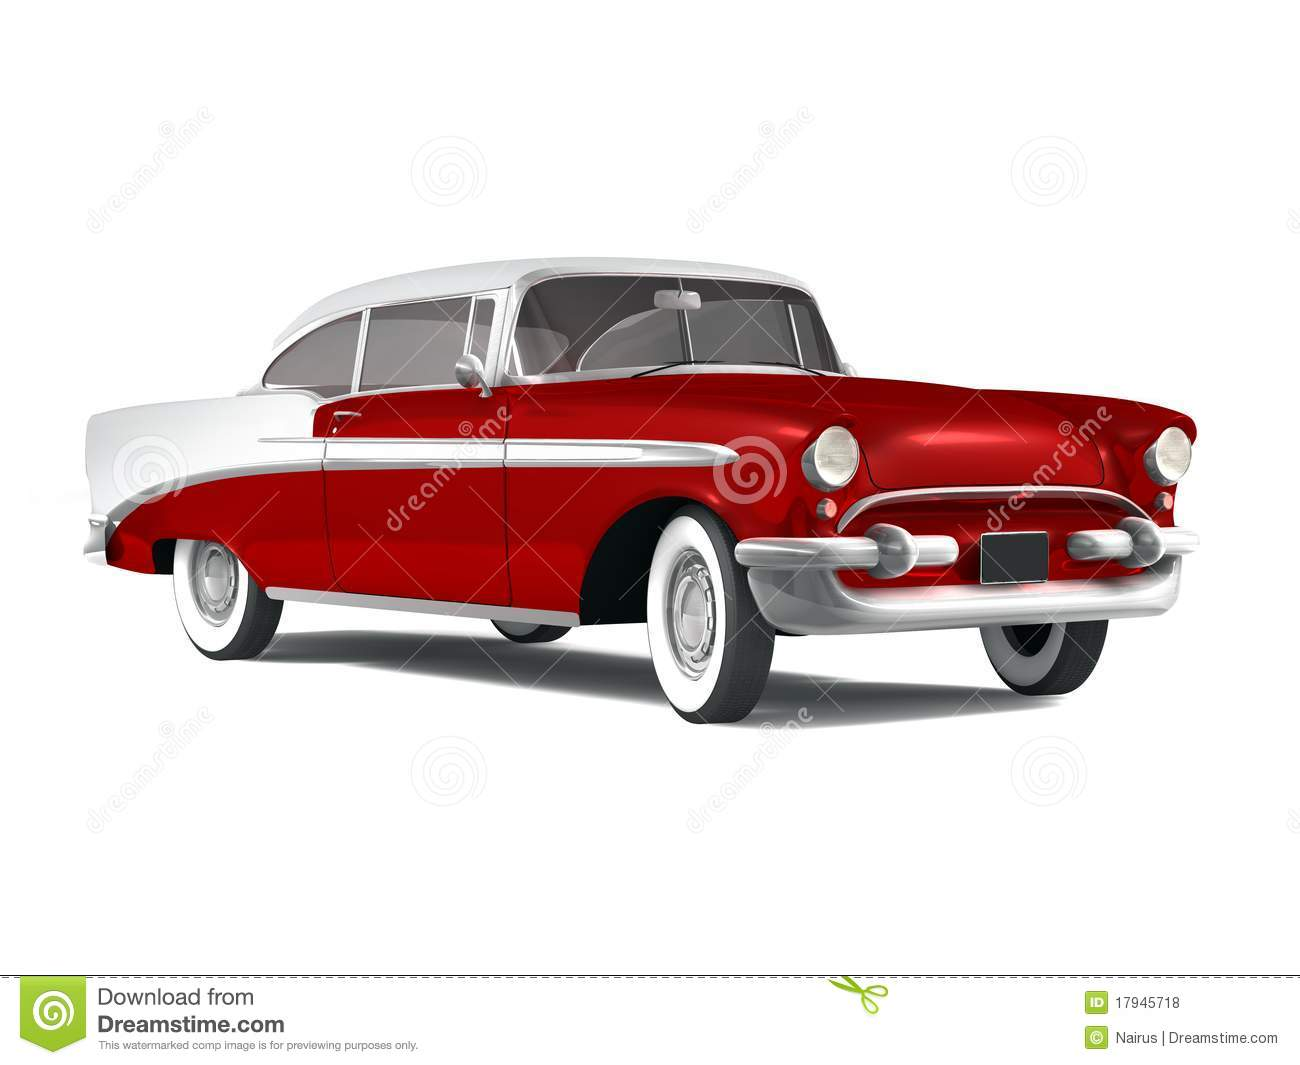 American classic car royalty free stock photos image for Classic american images